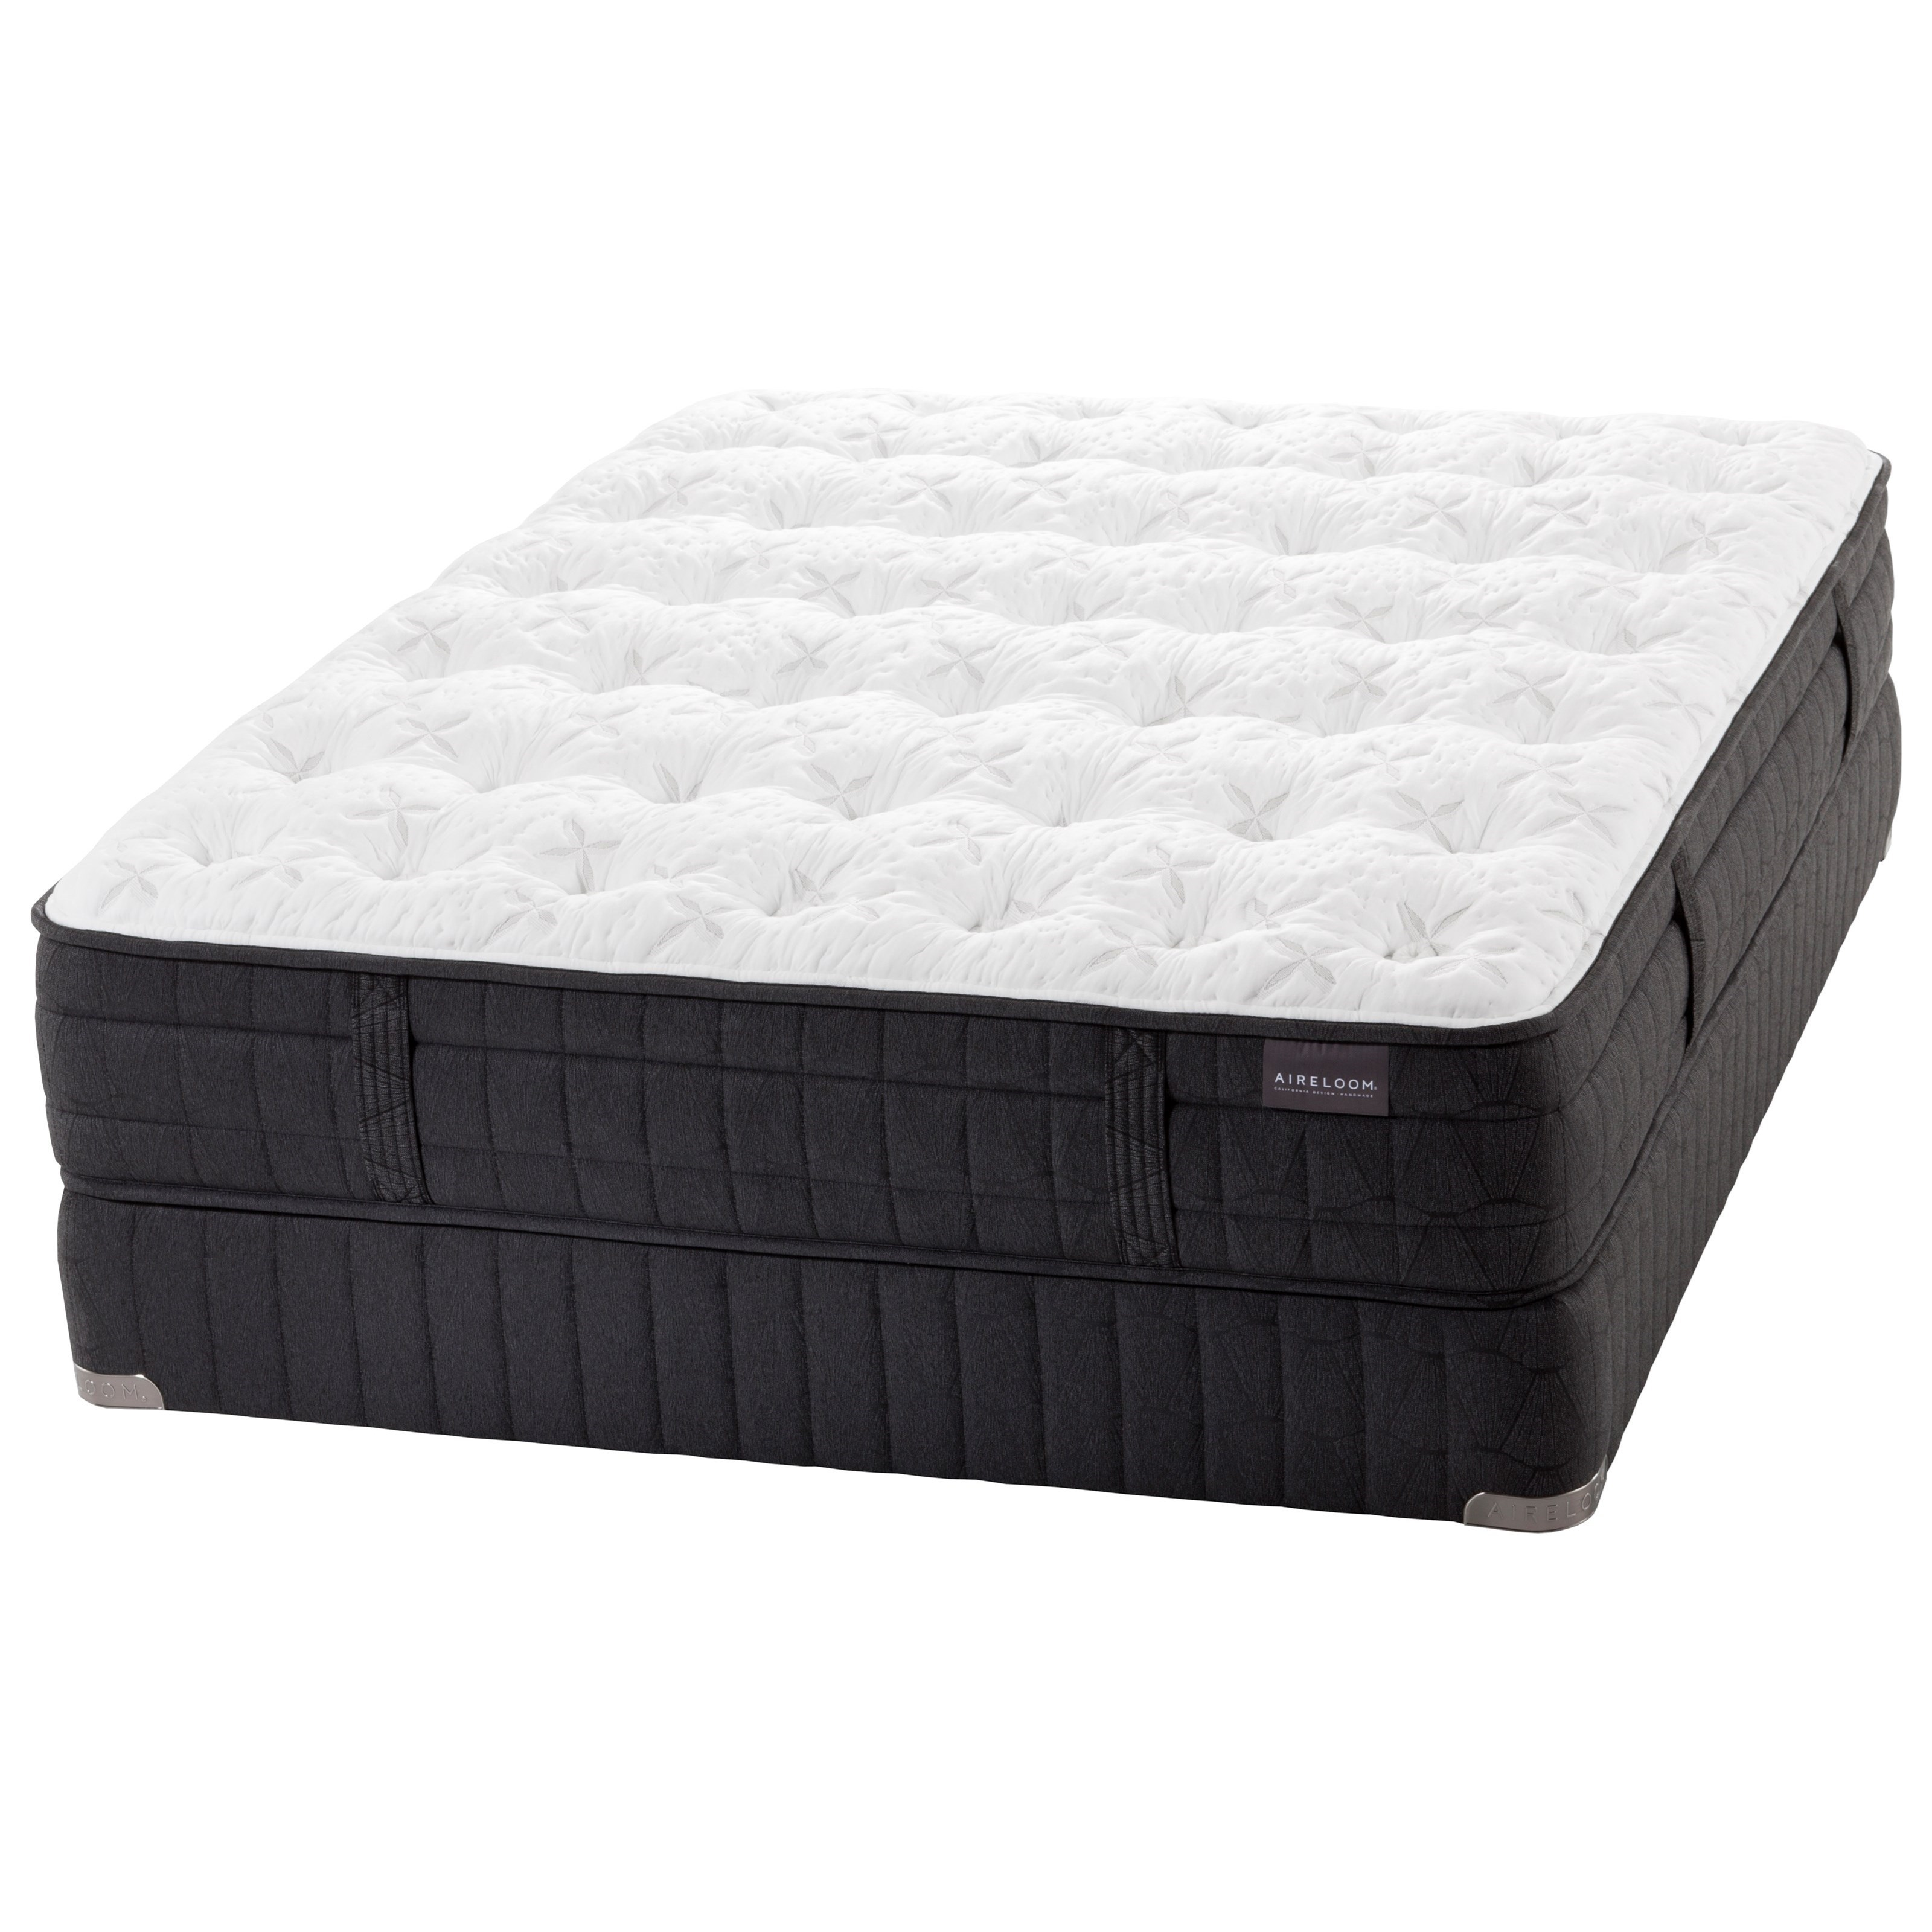 Aireloom California King Plush Mattress